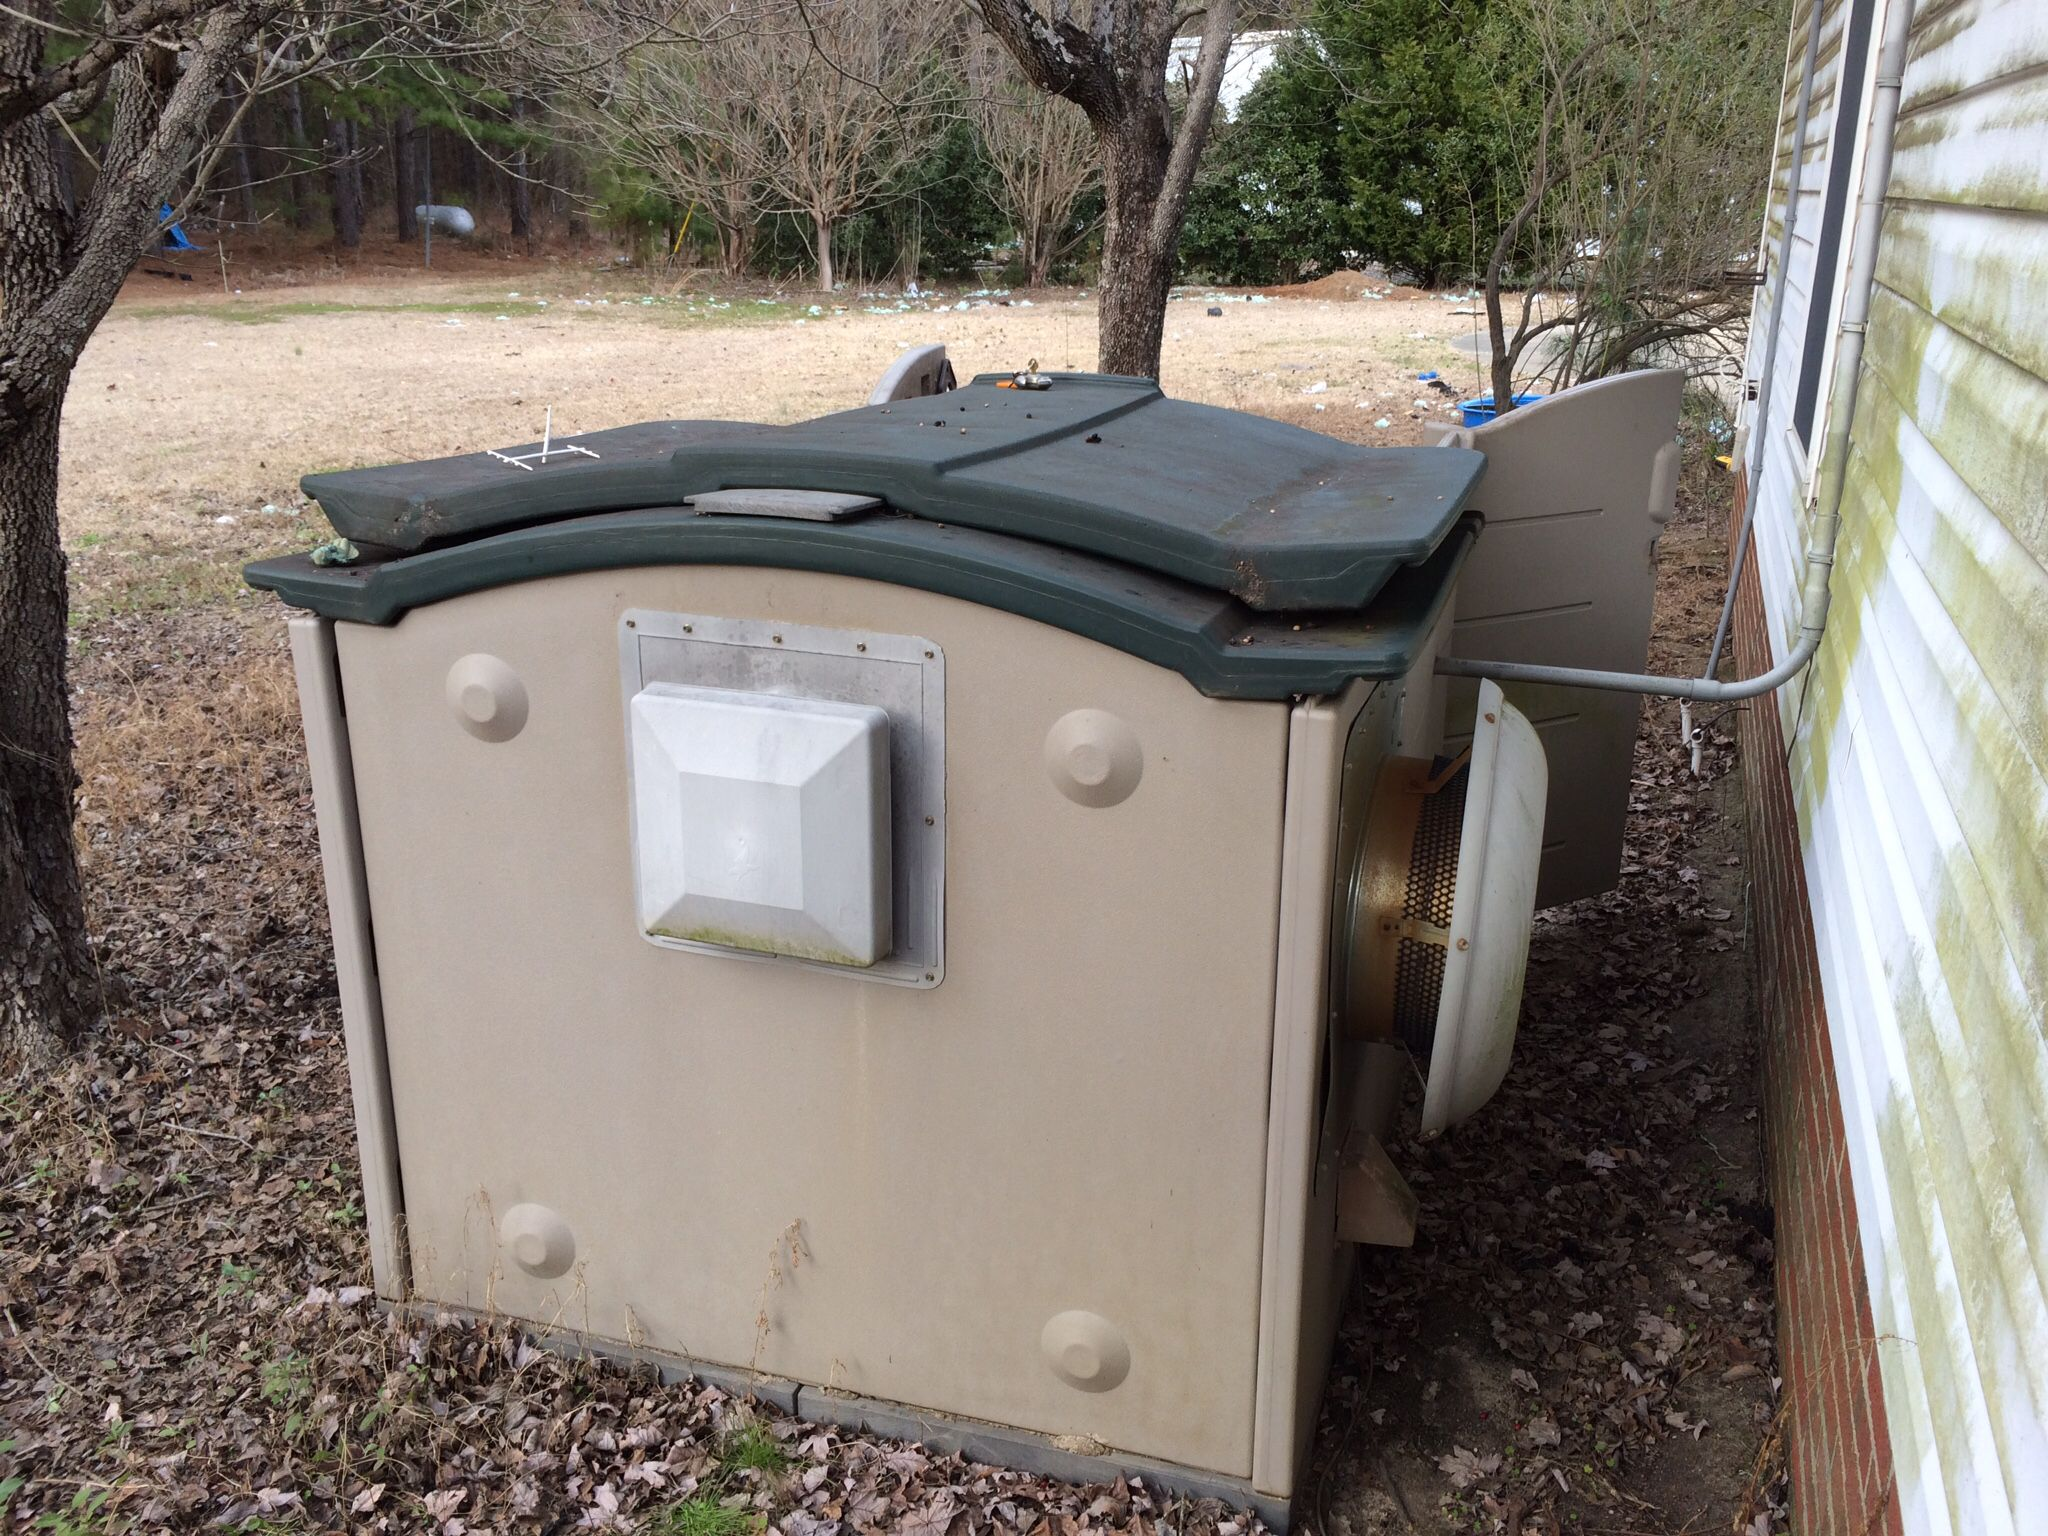 Back end of rubbermaid garden tractor house converted to